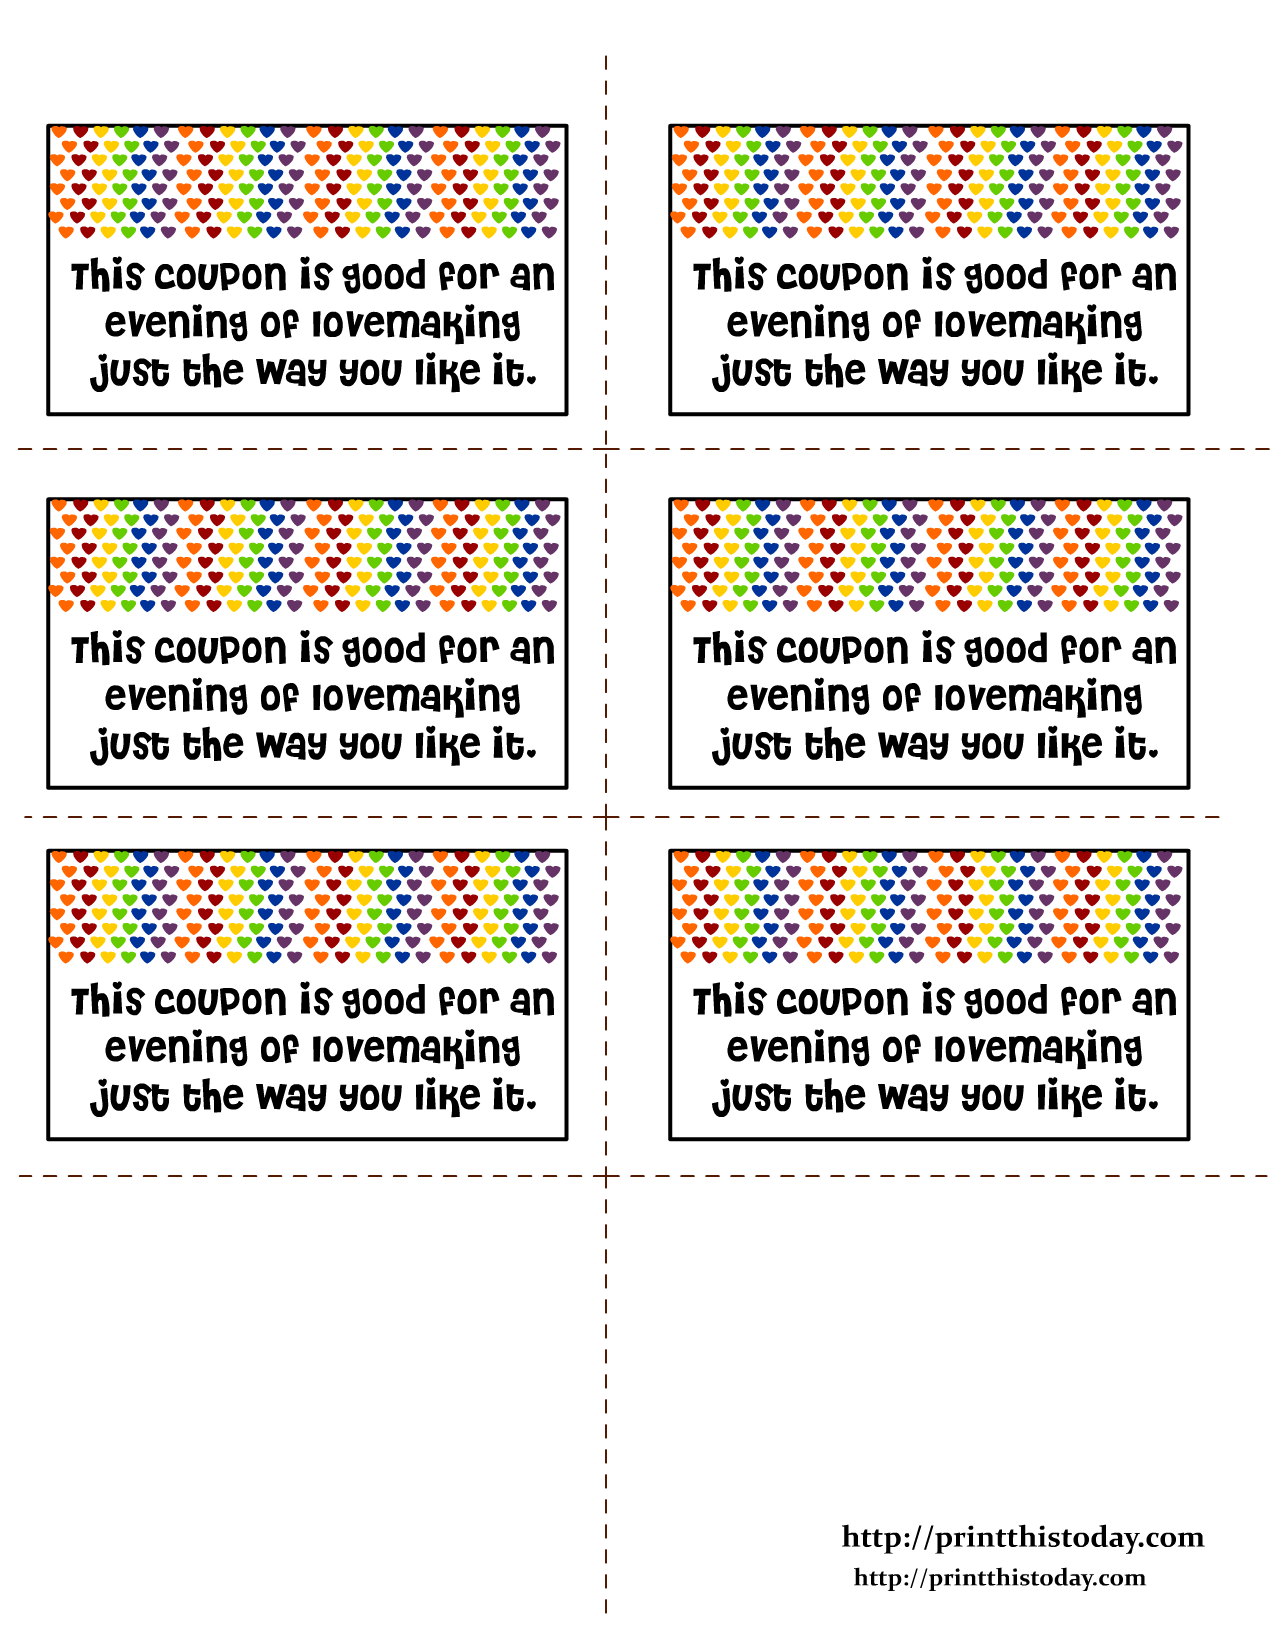 Making love coupons for boyfriend